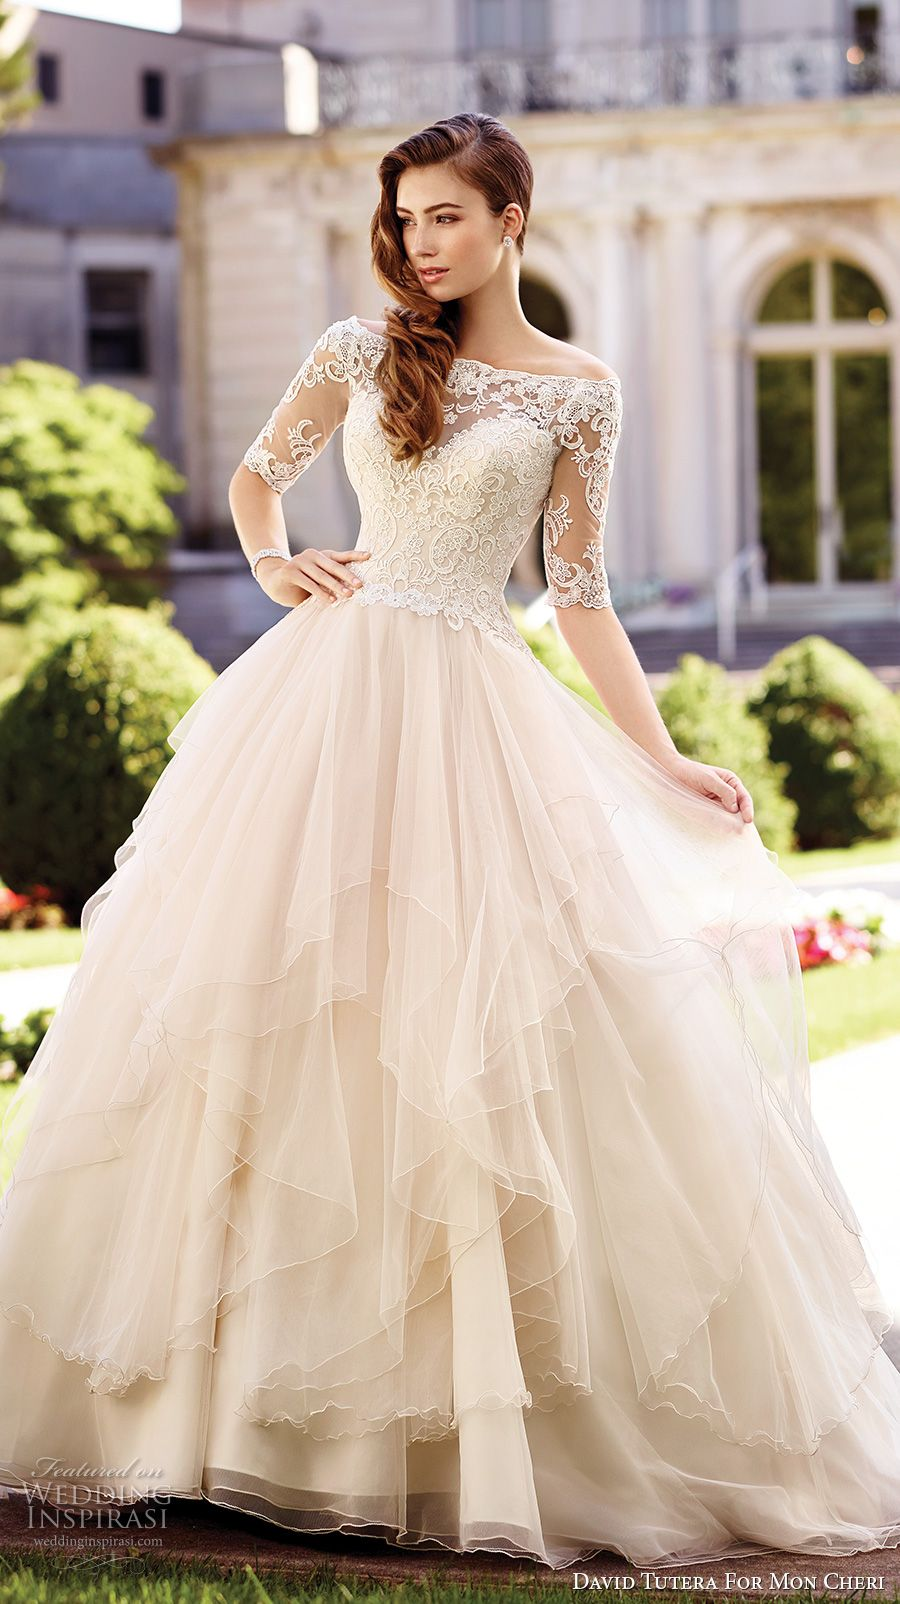 4deed06356d David Tutera for Mon Cheri Spring 2017 bridal half sleeves illusion off the  shoulder sweetheart neckline heavily embellished bodice princess ball gown  ...